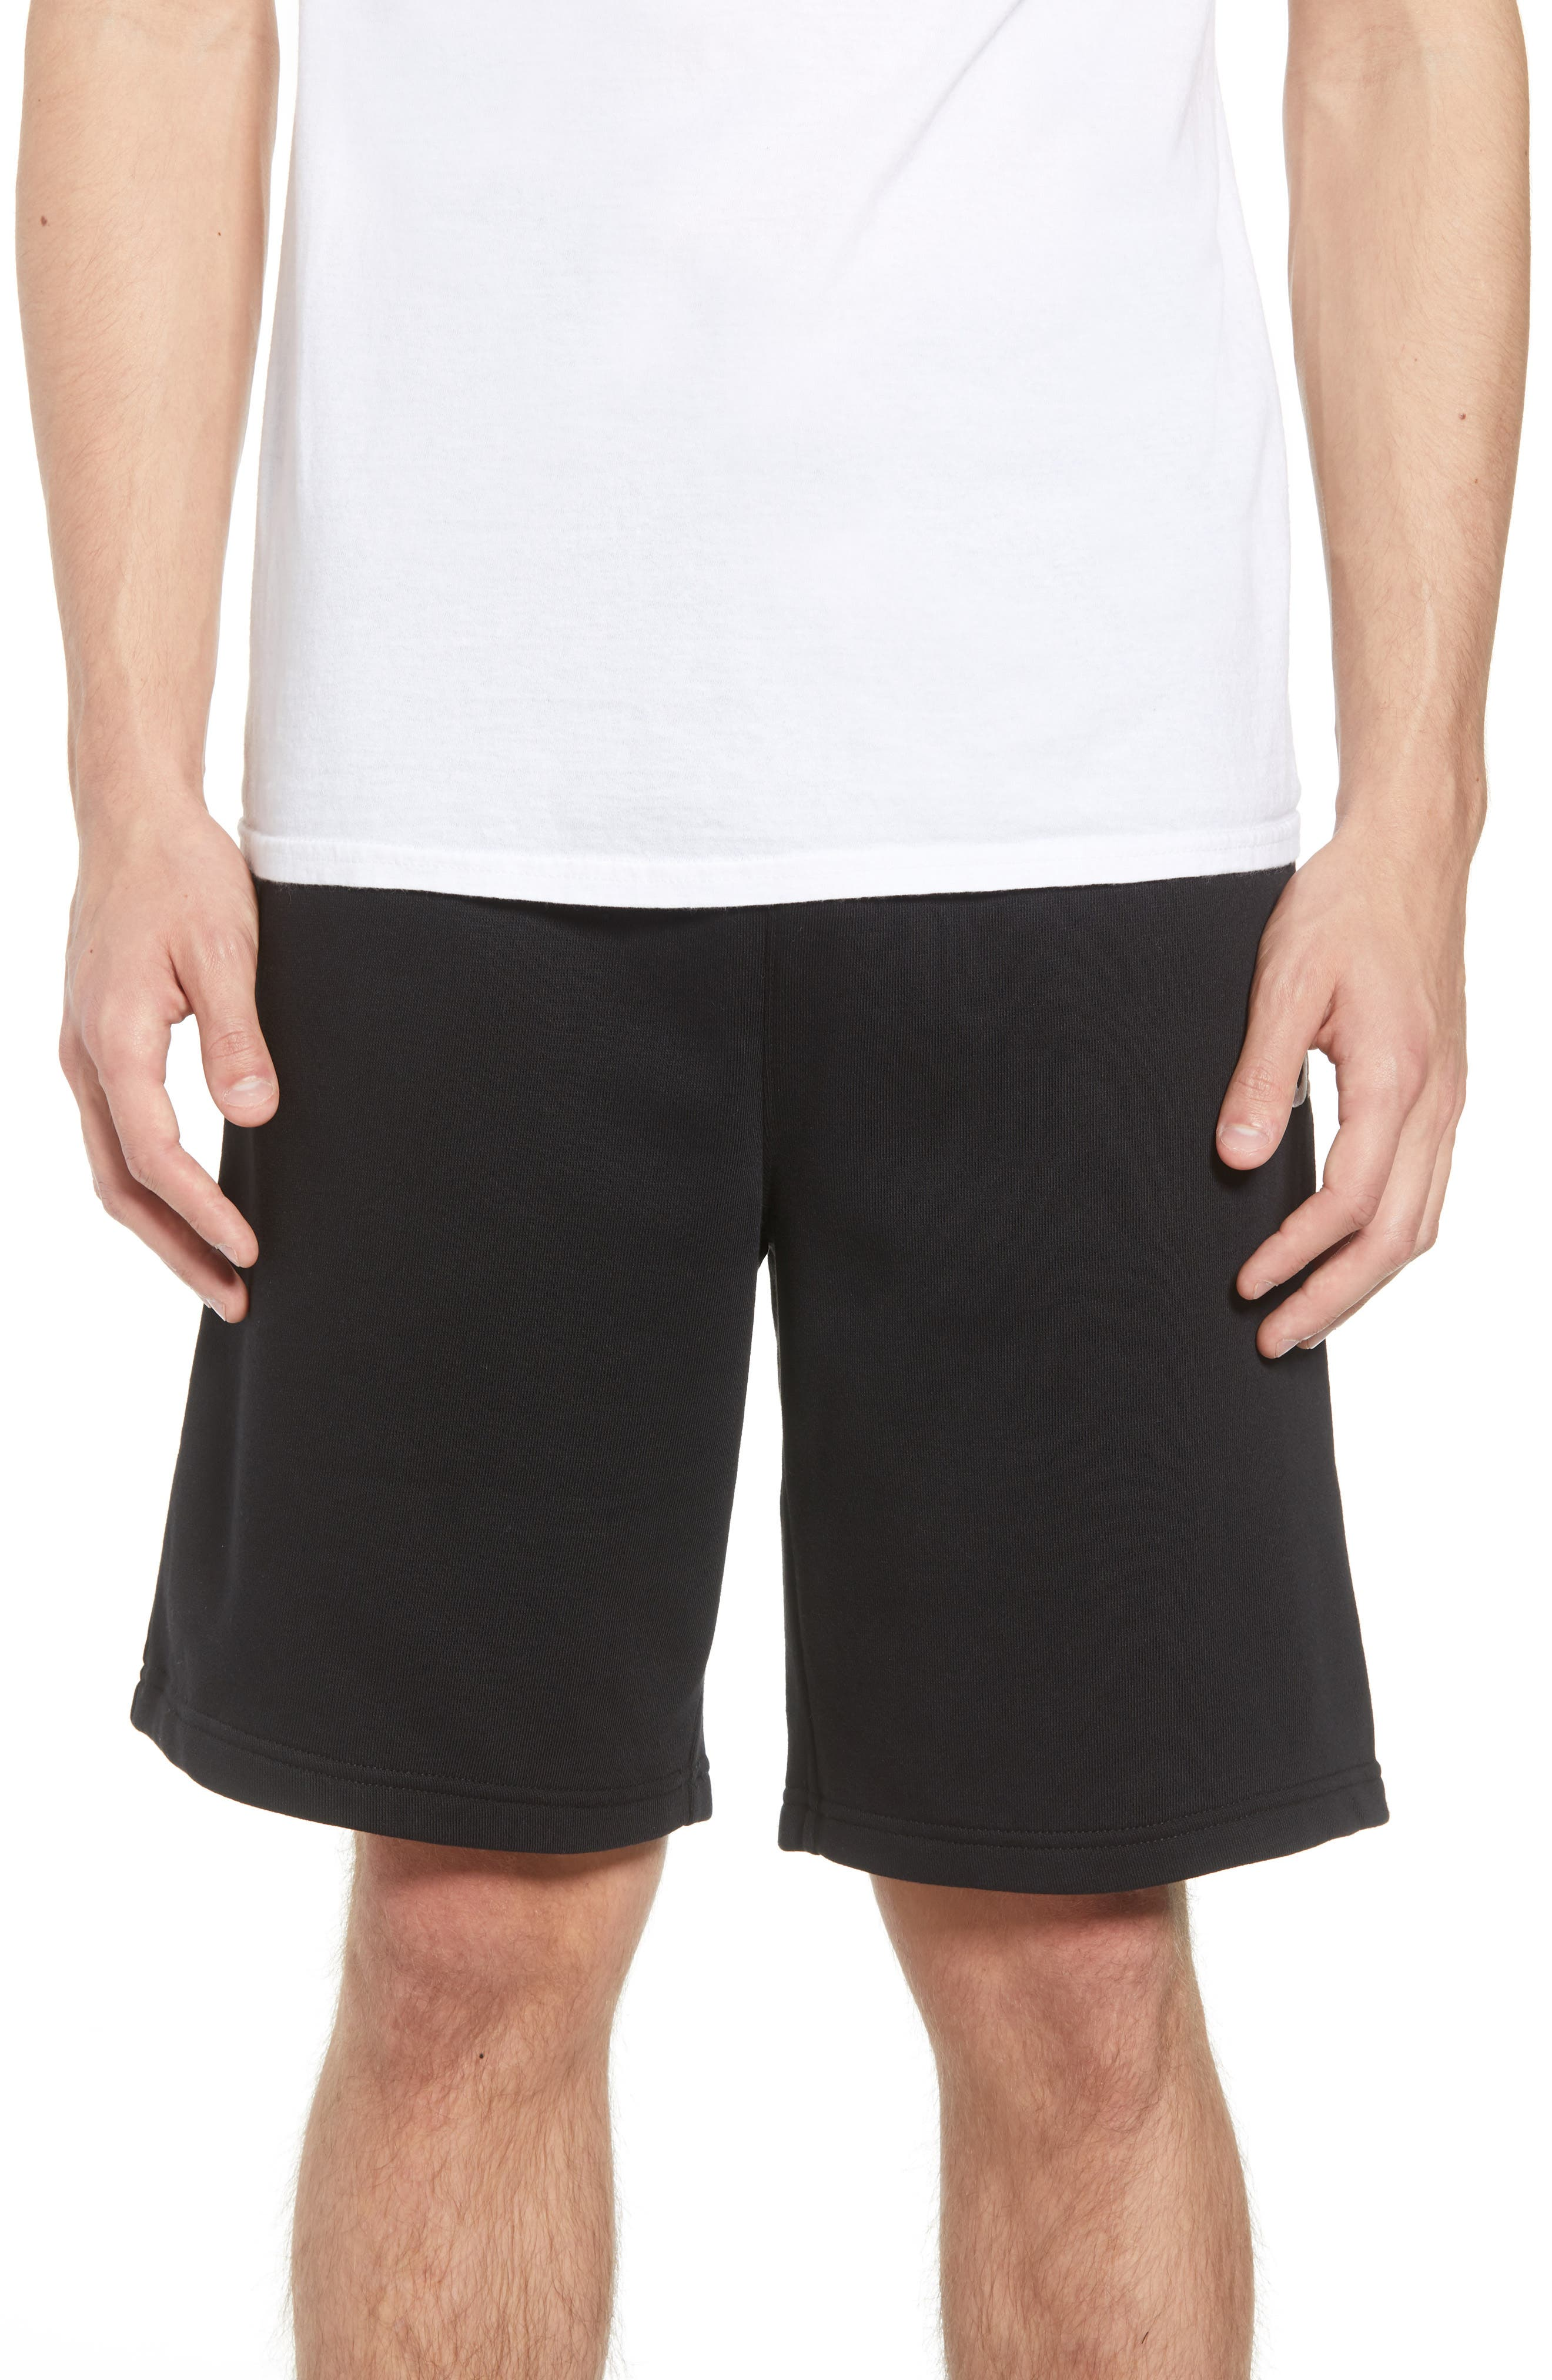 Tanaro Shorts,                         Main,                         color, 001